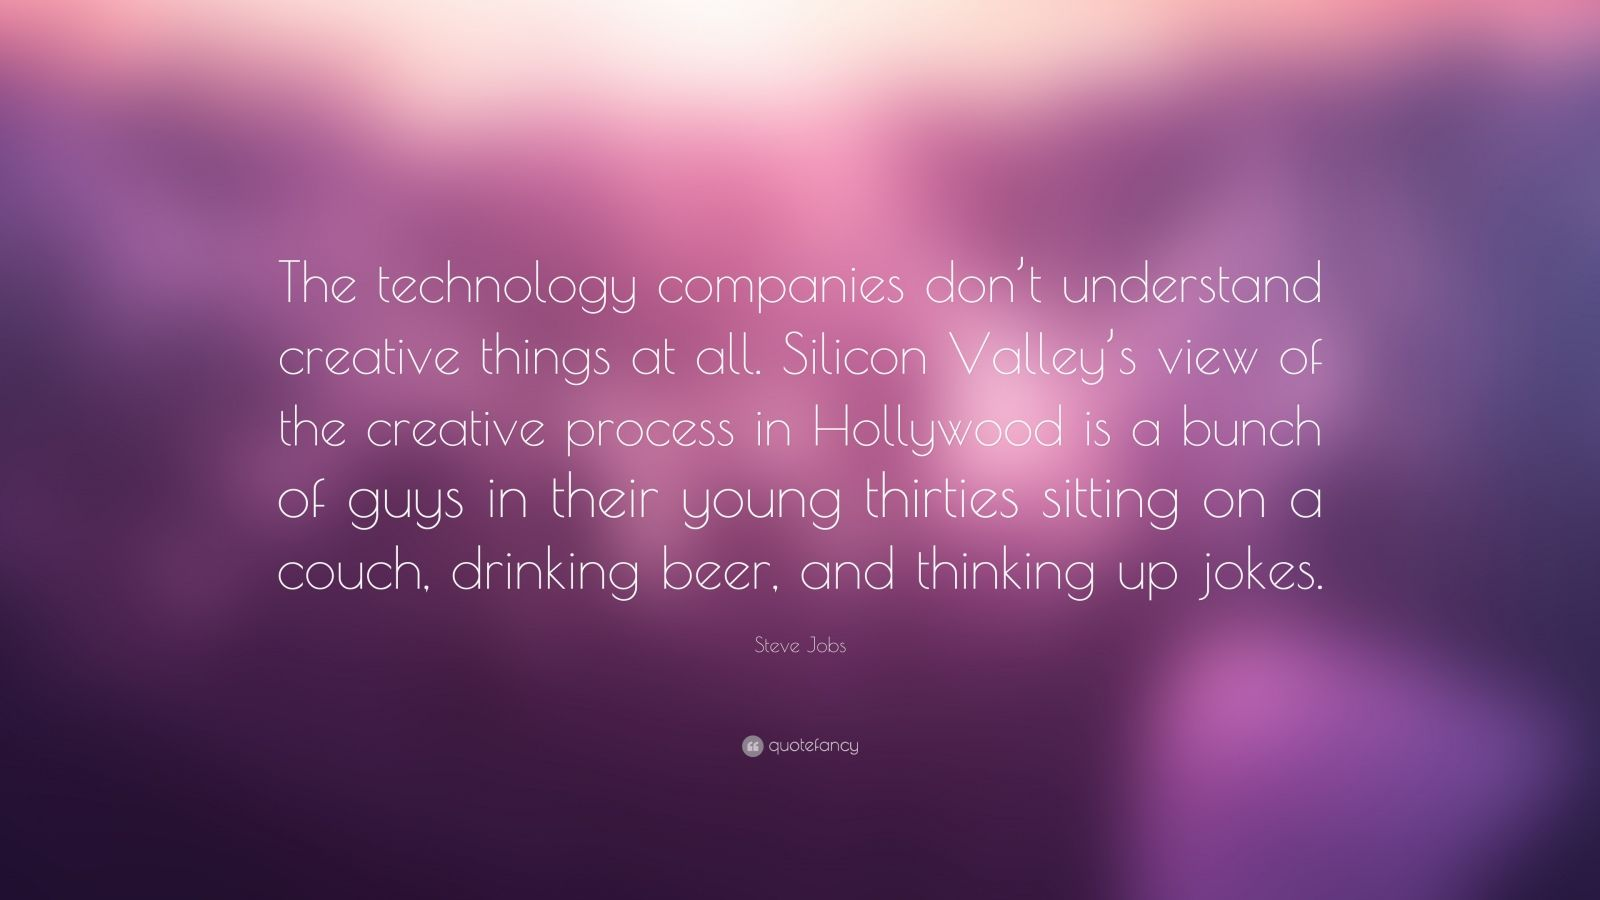 """Steve Jobs Quote: """"The technology companies don't understand creative things at all. Silicon Valley's view of the creative process in Hollywood is a bunch of guys in their young thirties sitting on a couch, drinking beer, and thinking up jokes."""""""